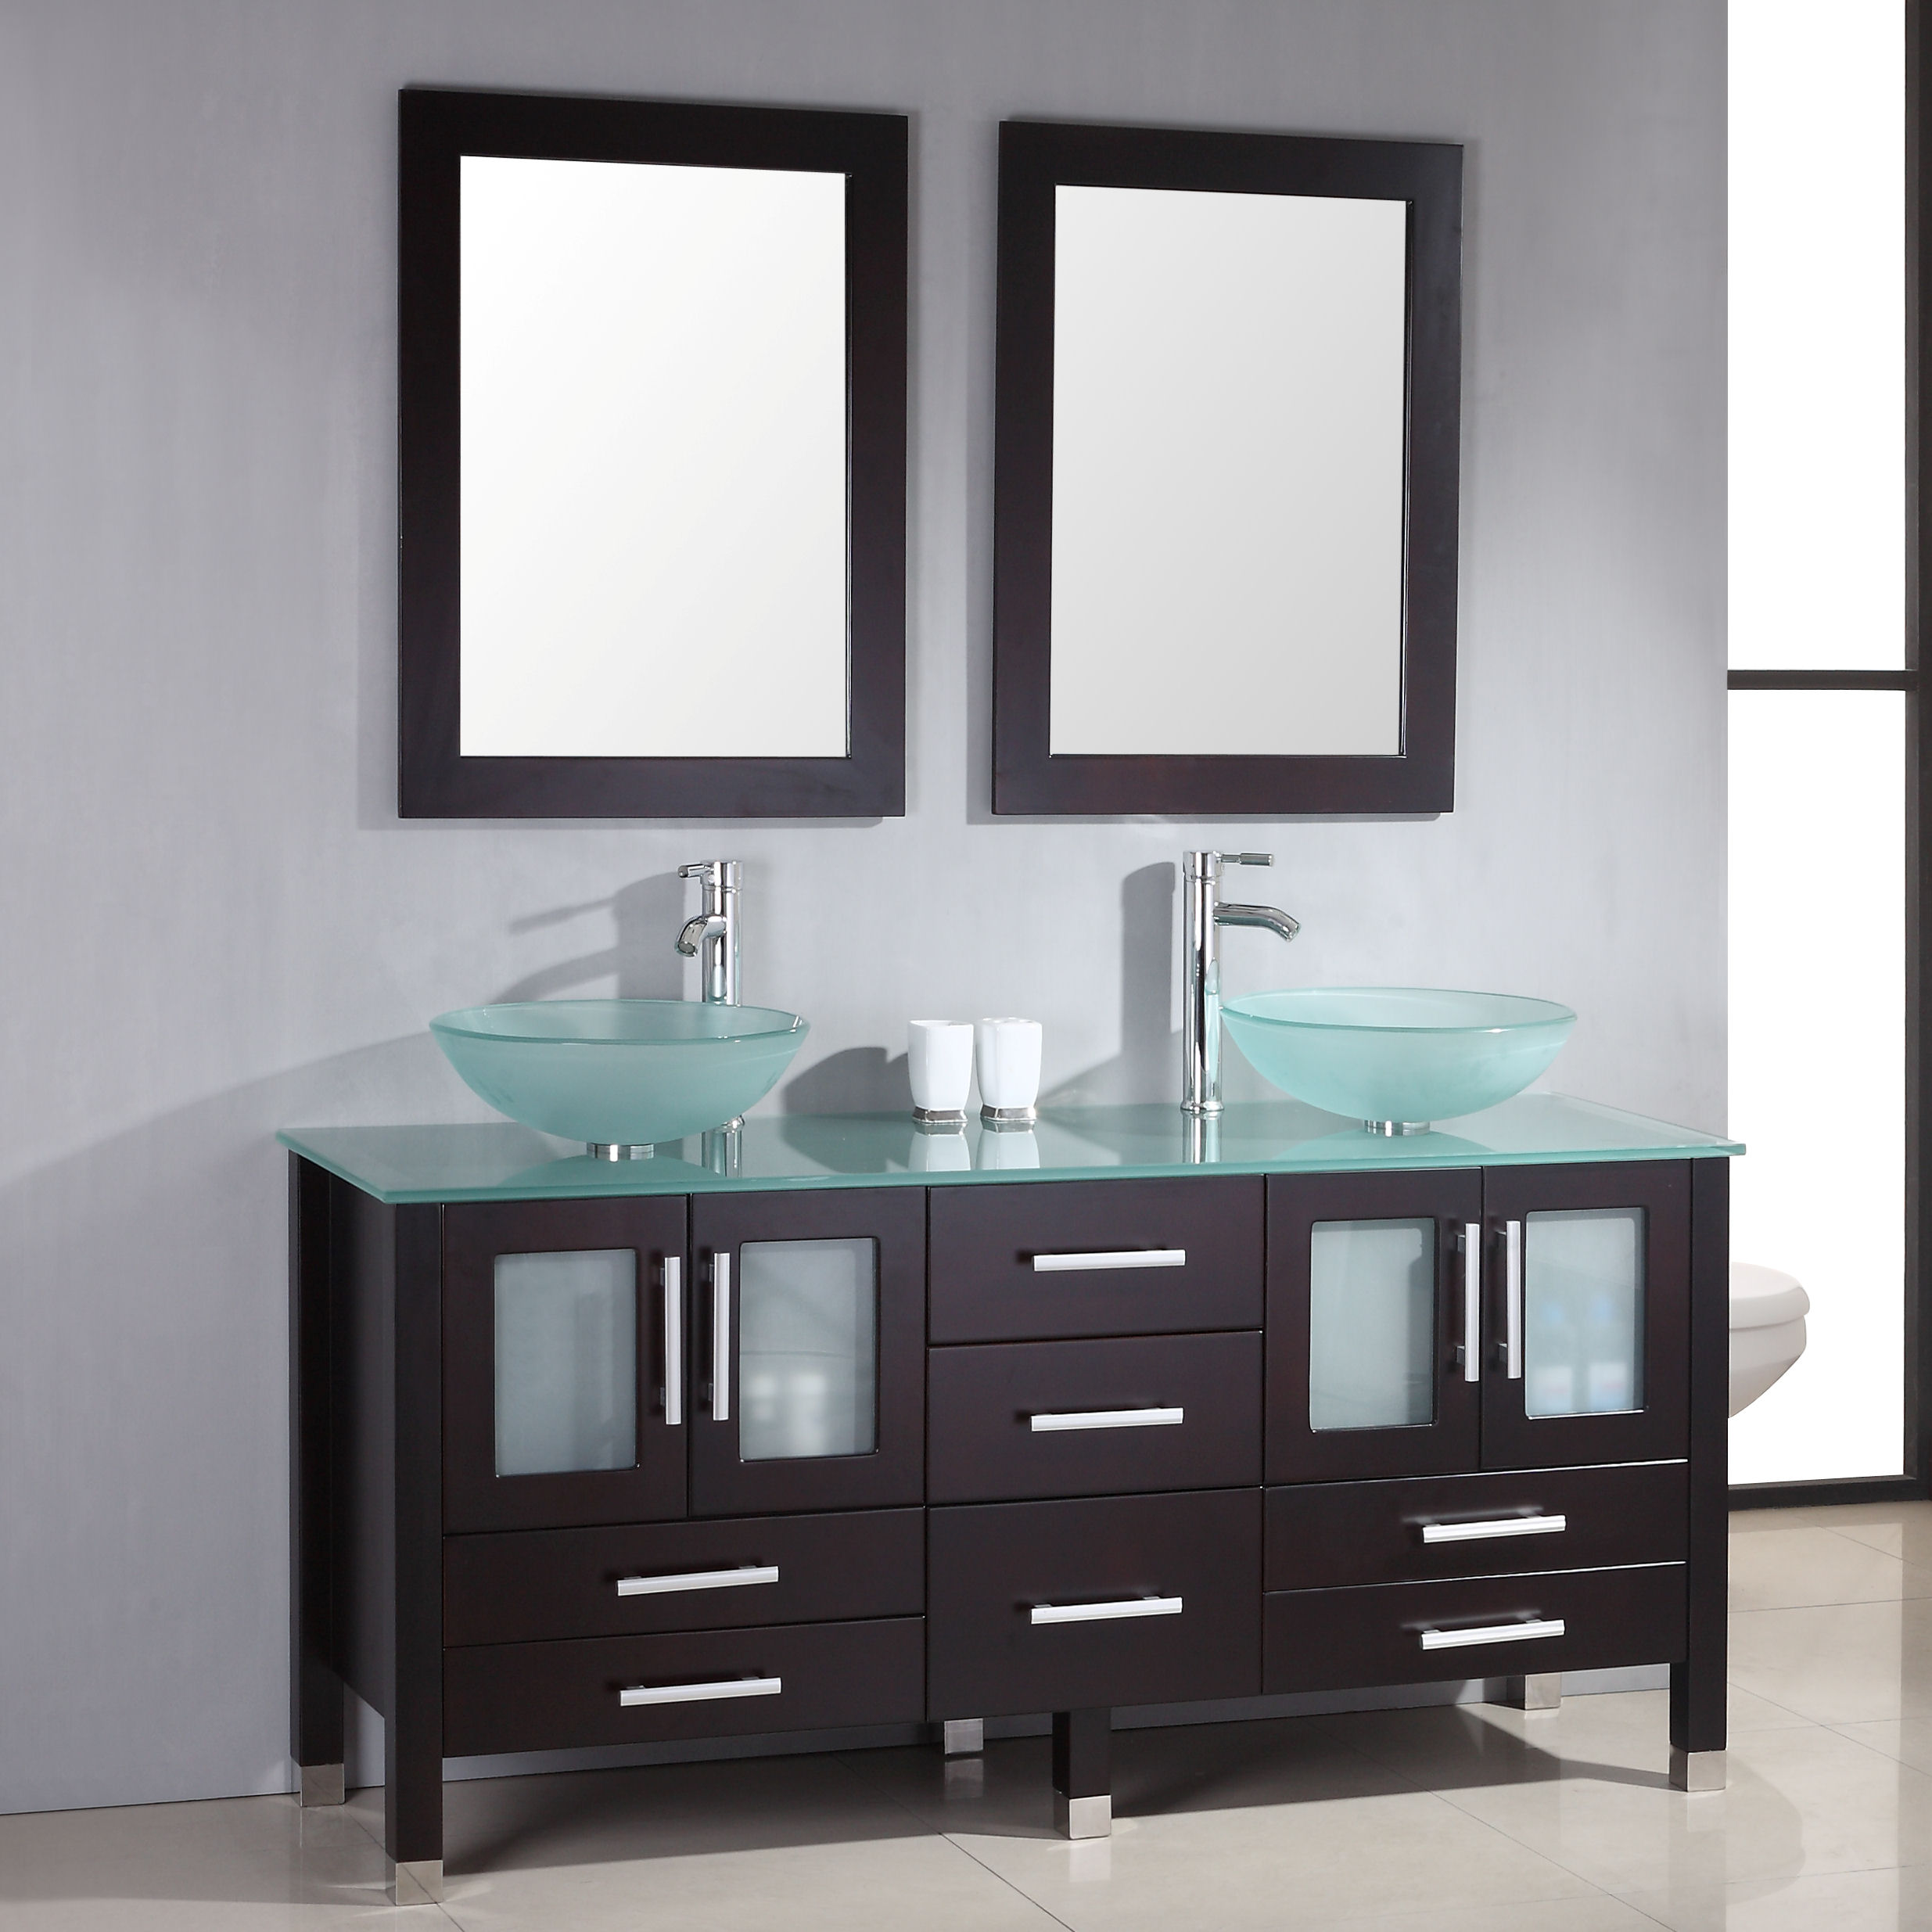 cambridge  inch glass double vessel sink with glass counter top - cambridge  inch glass double vessel vanity